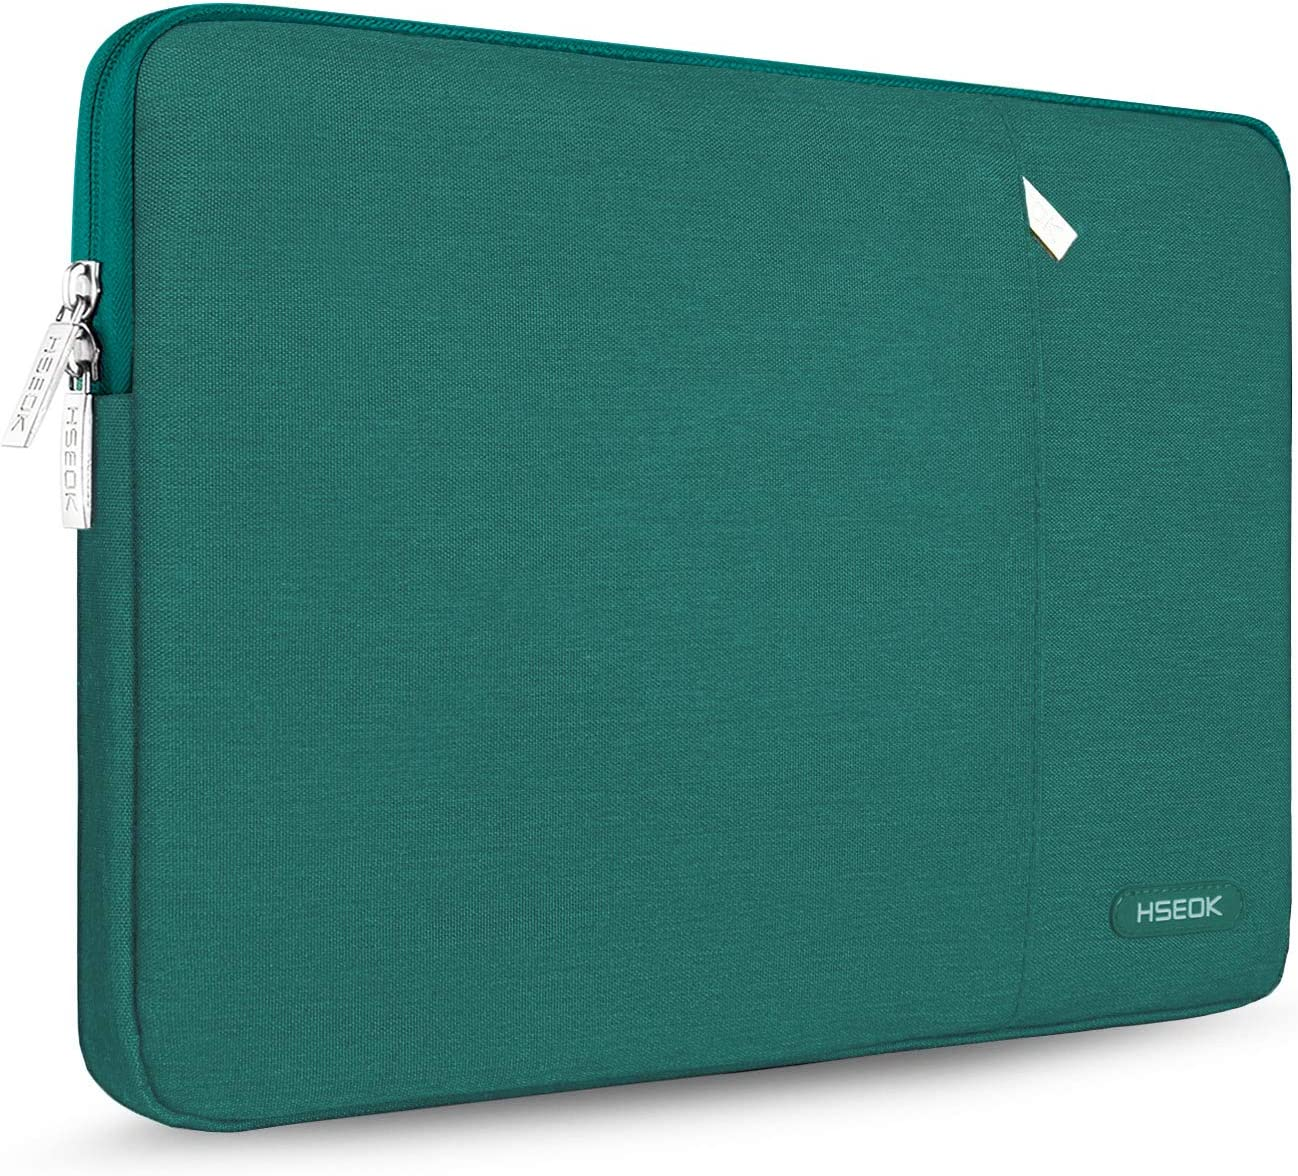 Hseok 15.6-Inch Laptop Case Sleeve, Spill-Resistant Case for 15.4-Inch MacBook Pro 2012 A1286, MacBook Pro Retina 2012-2015 A1398 and Most 15.6-Inch Laptop,Dark Green